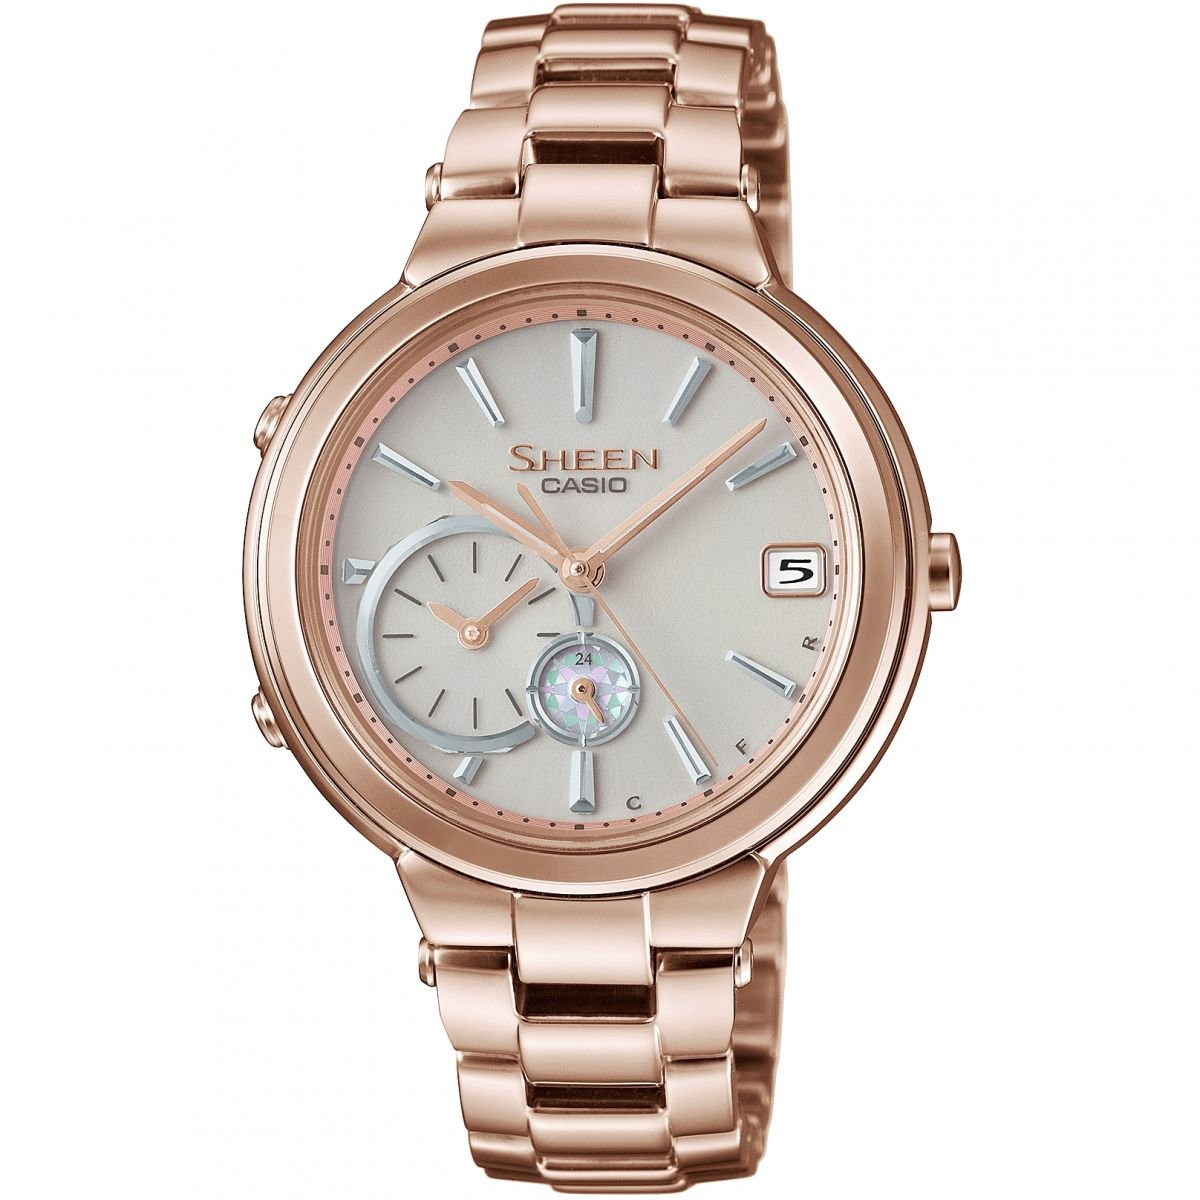 Amazon.com: Casio Sheen Time Ring Bluetooth Rose Gold ...